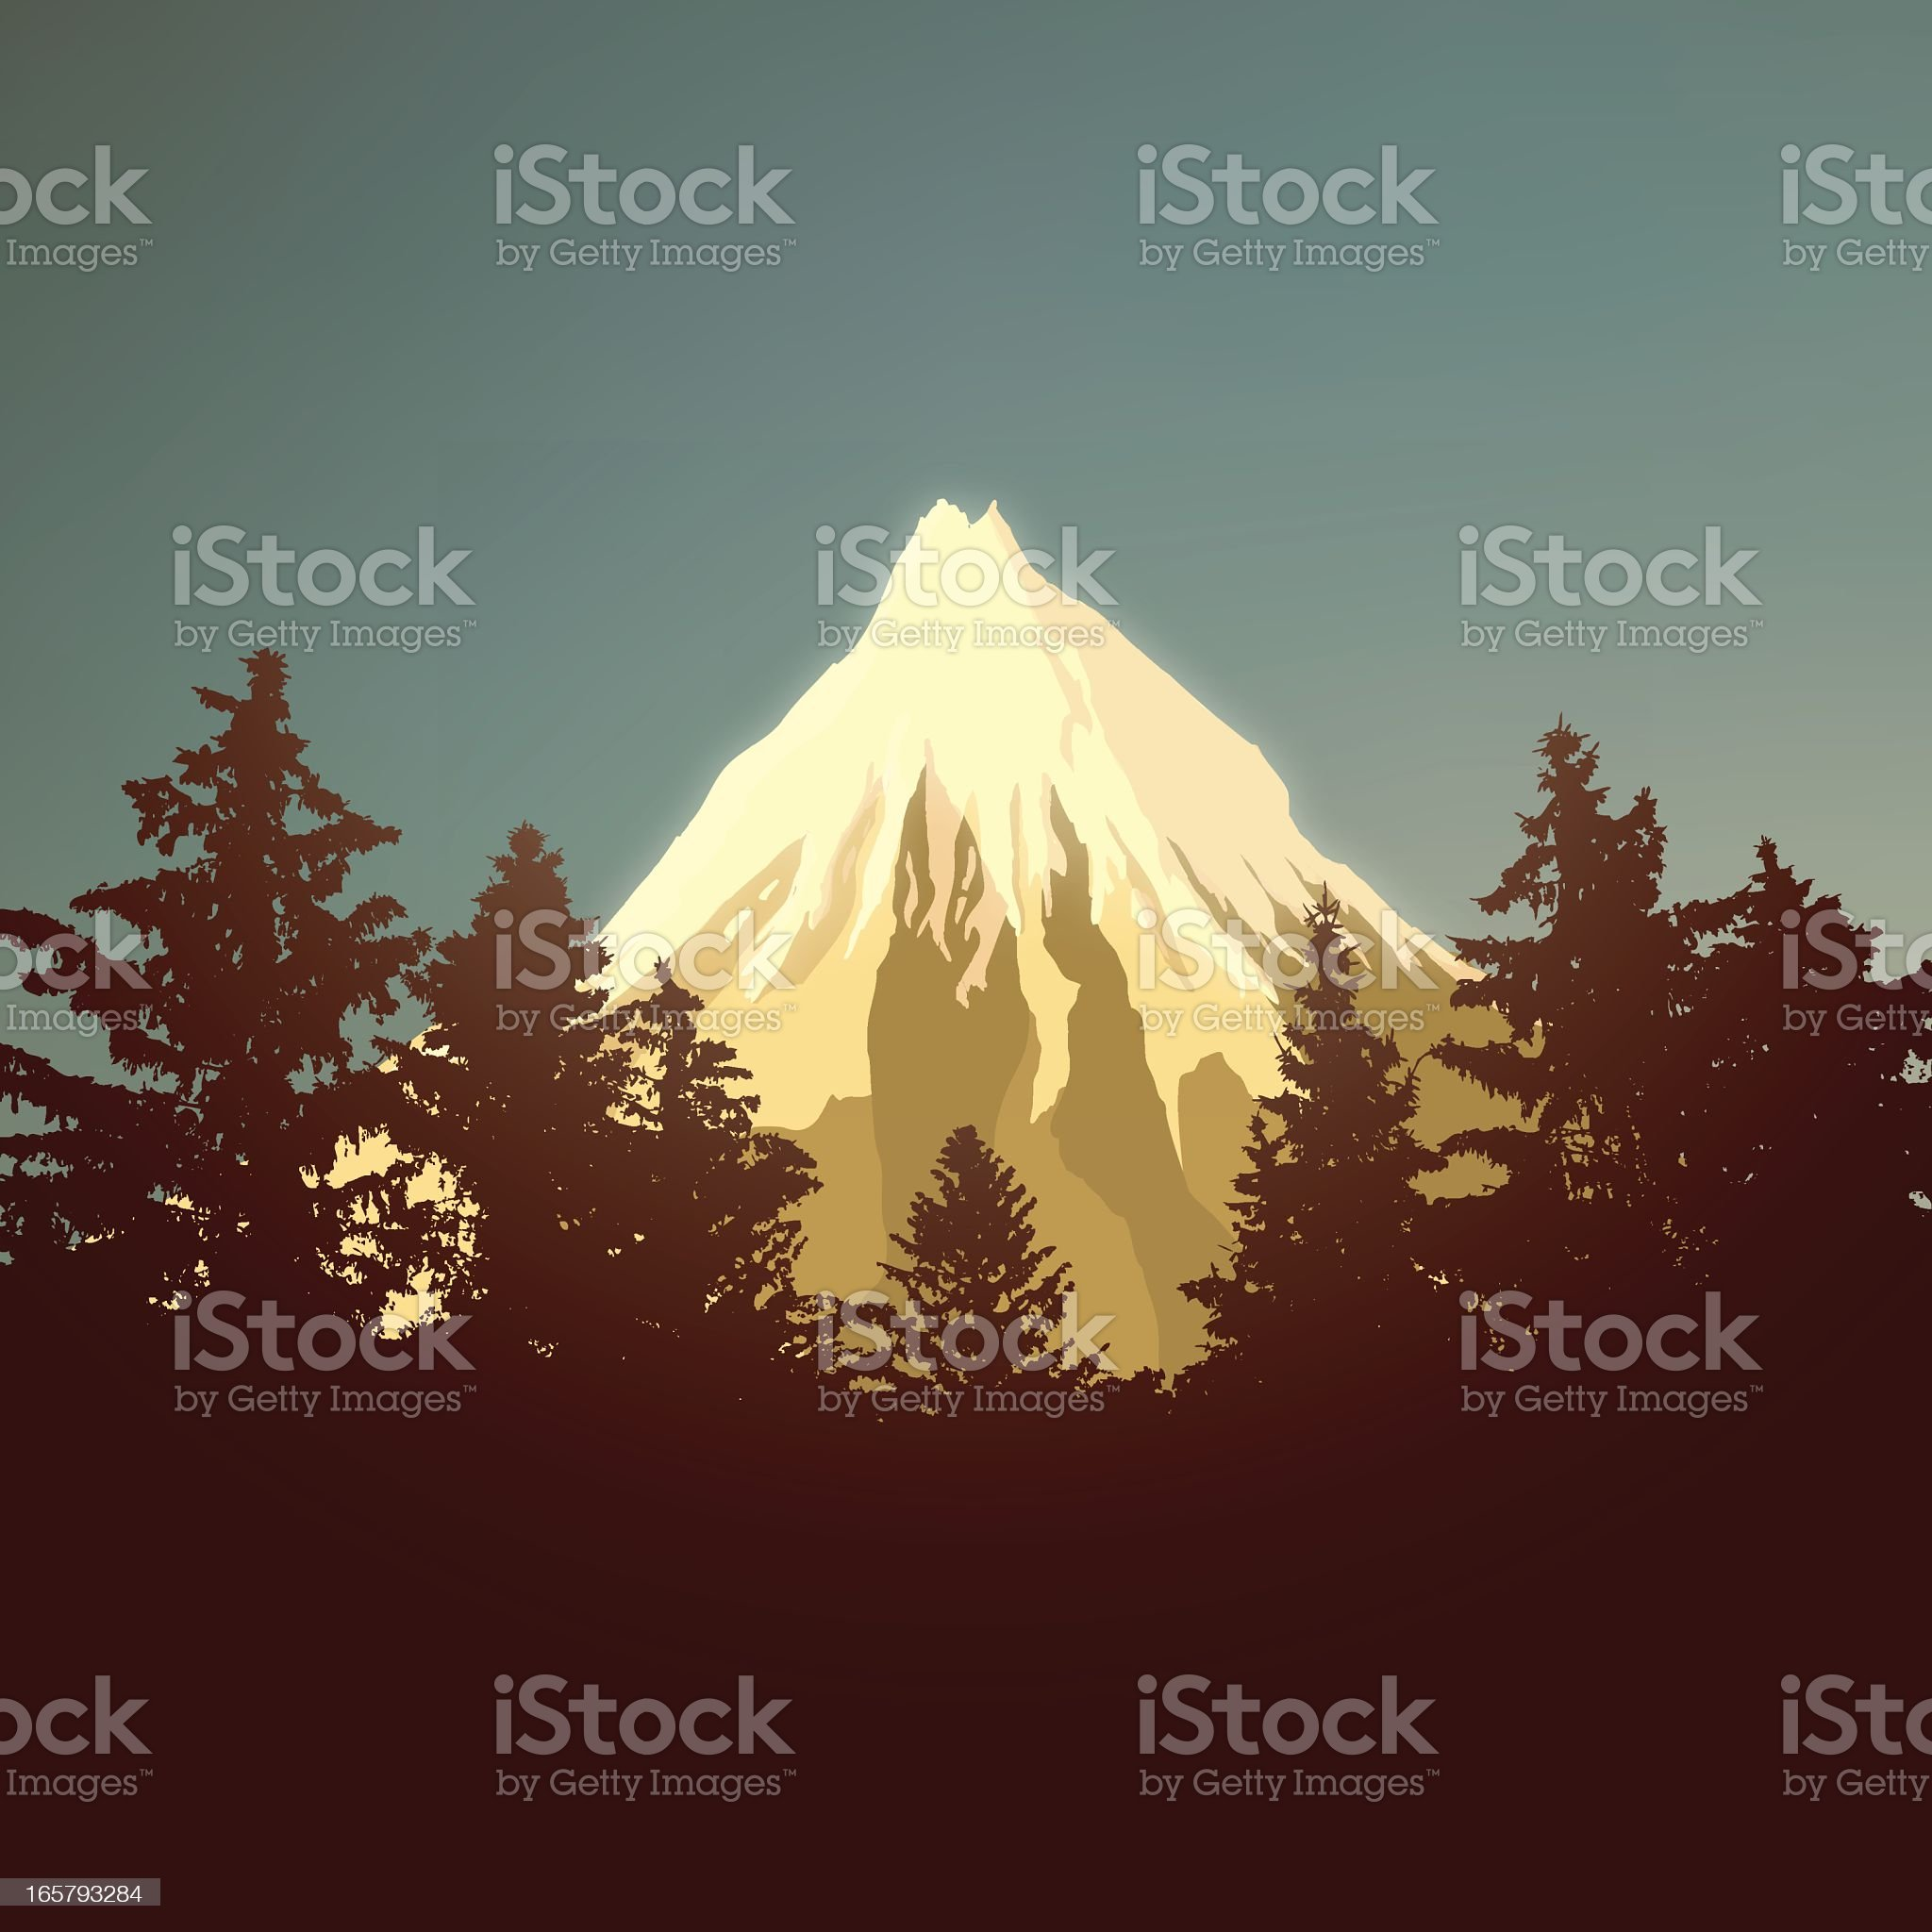 Snow capped mountain landscape royalty-free stock vector art